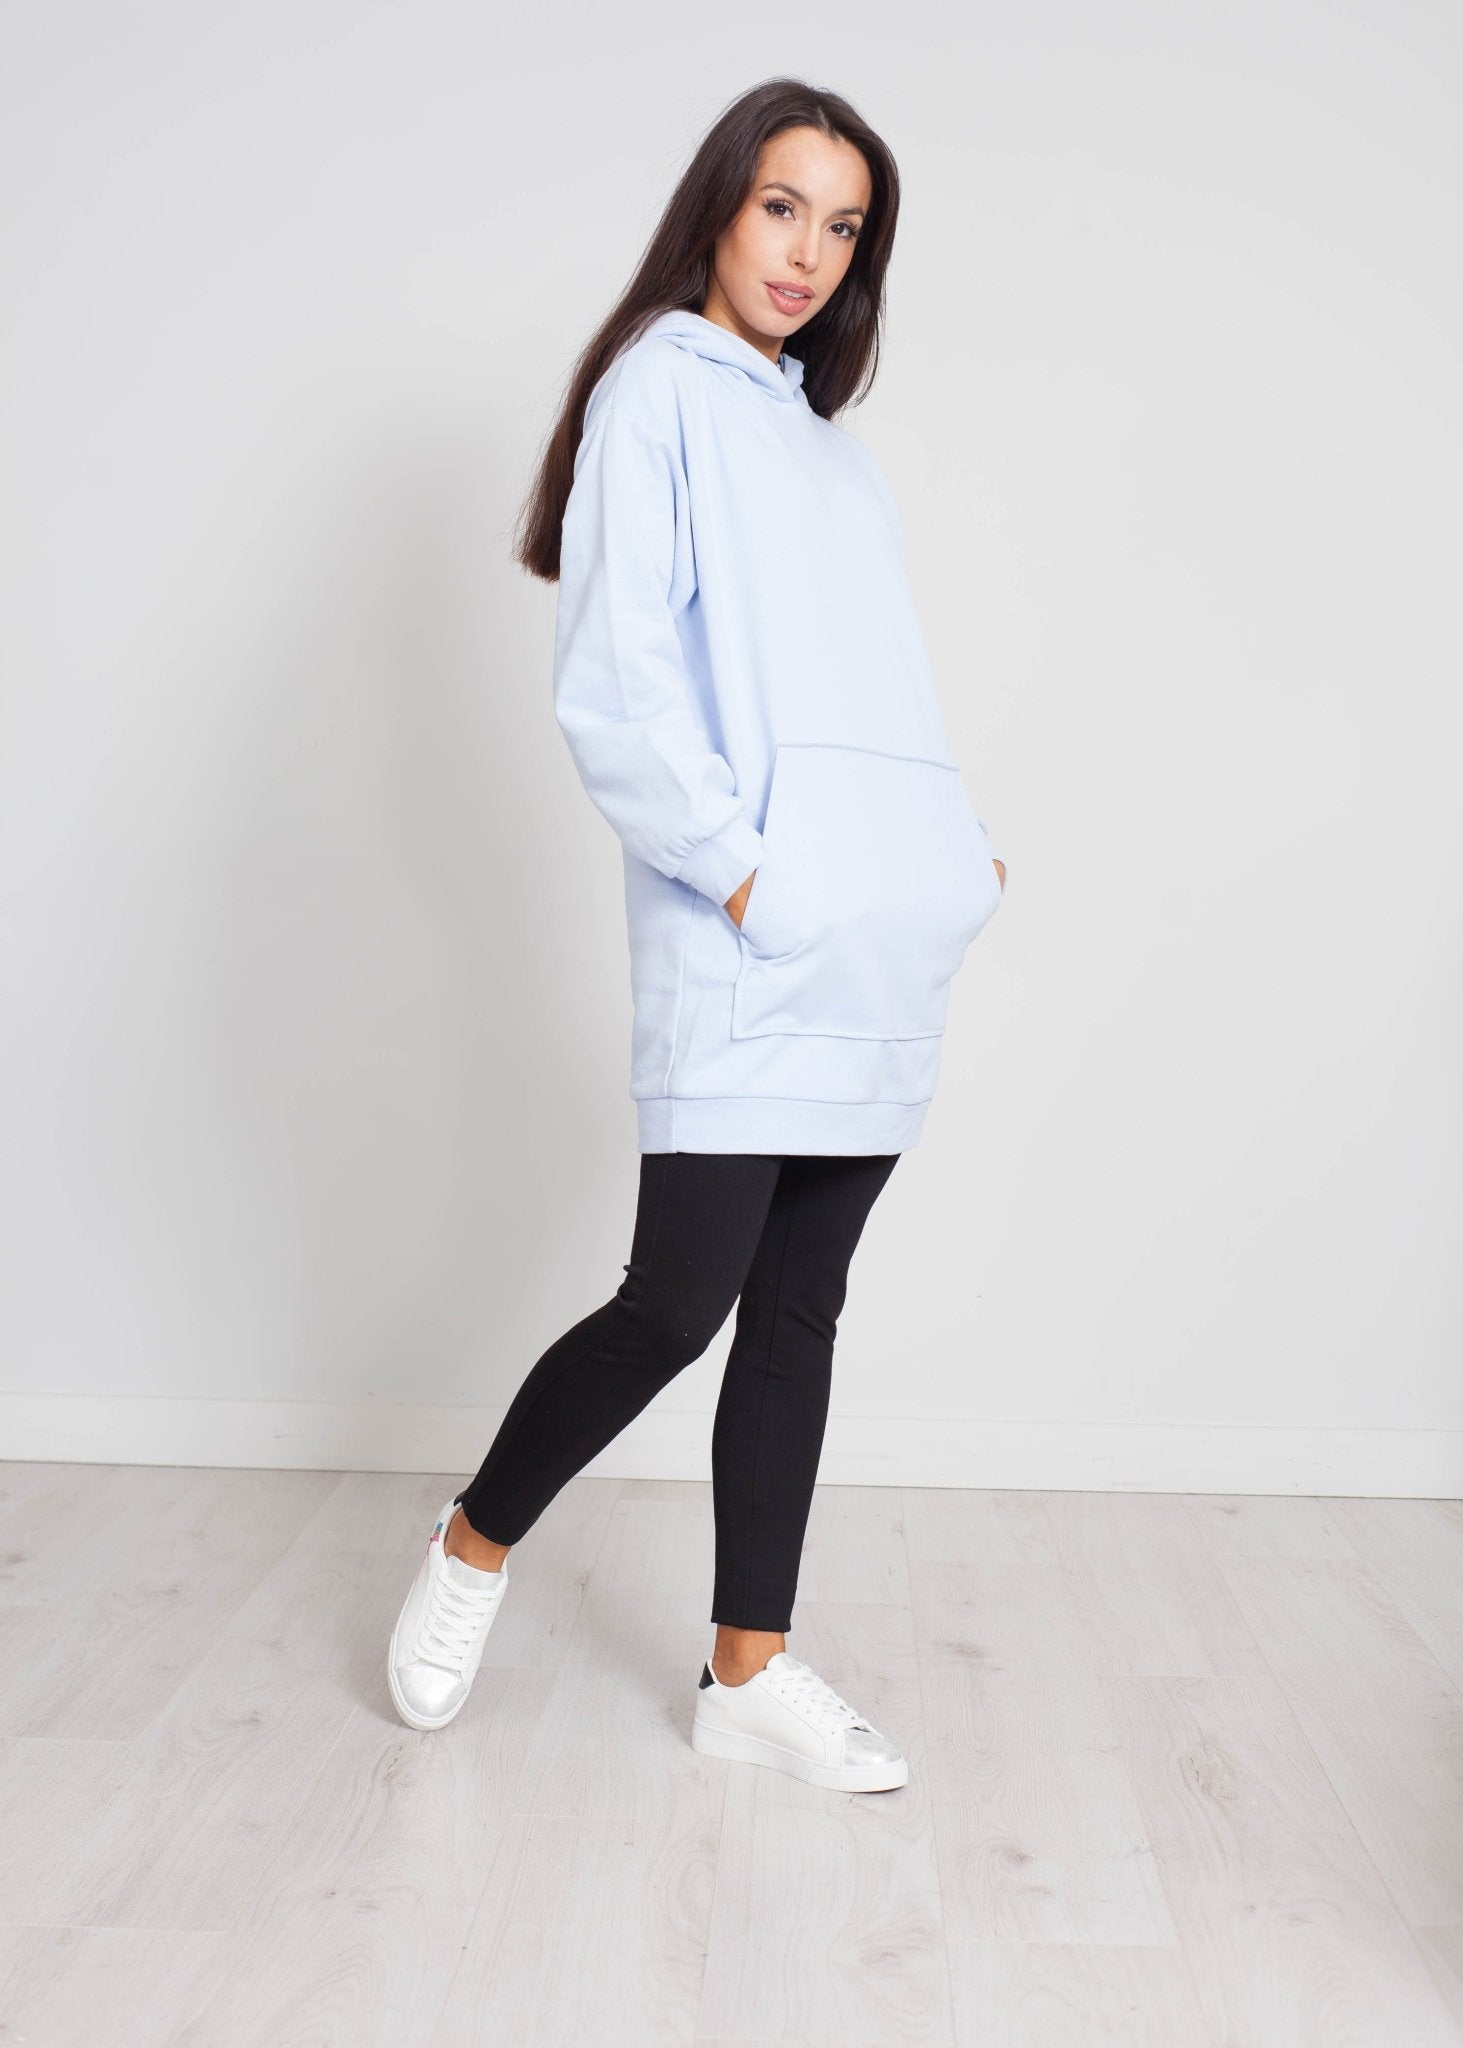 Emilia Longline Hoodie In Powder Blue - The Walk in Wardrobe